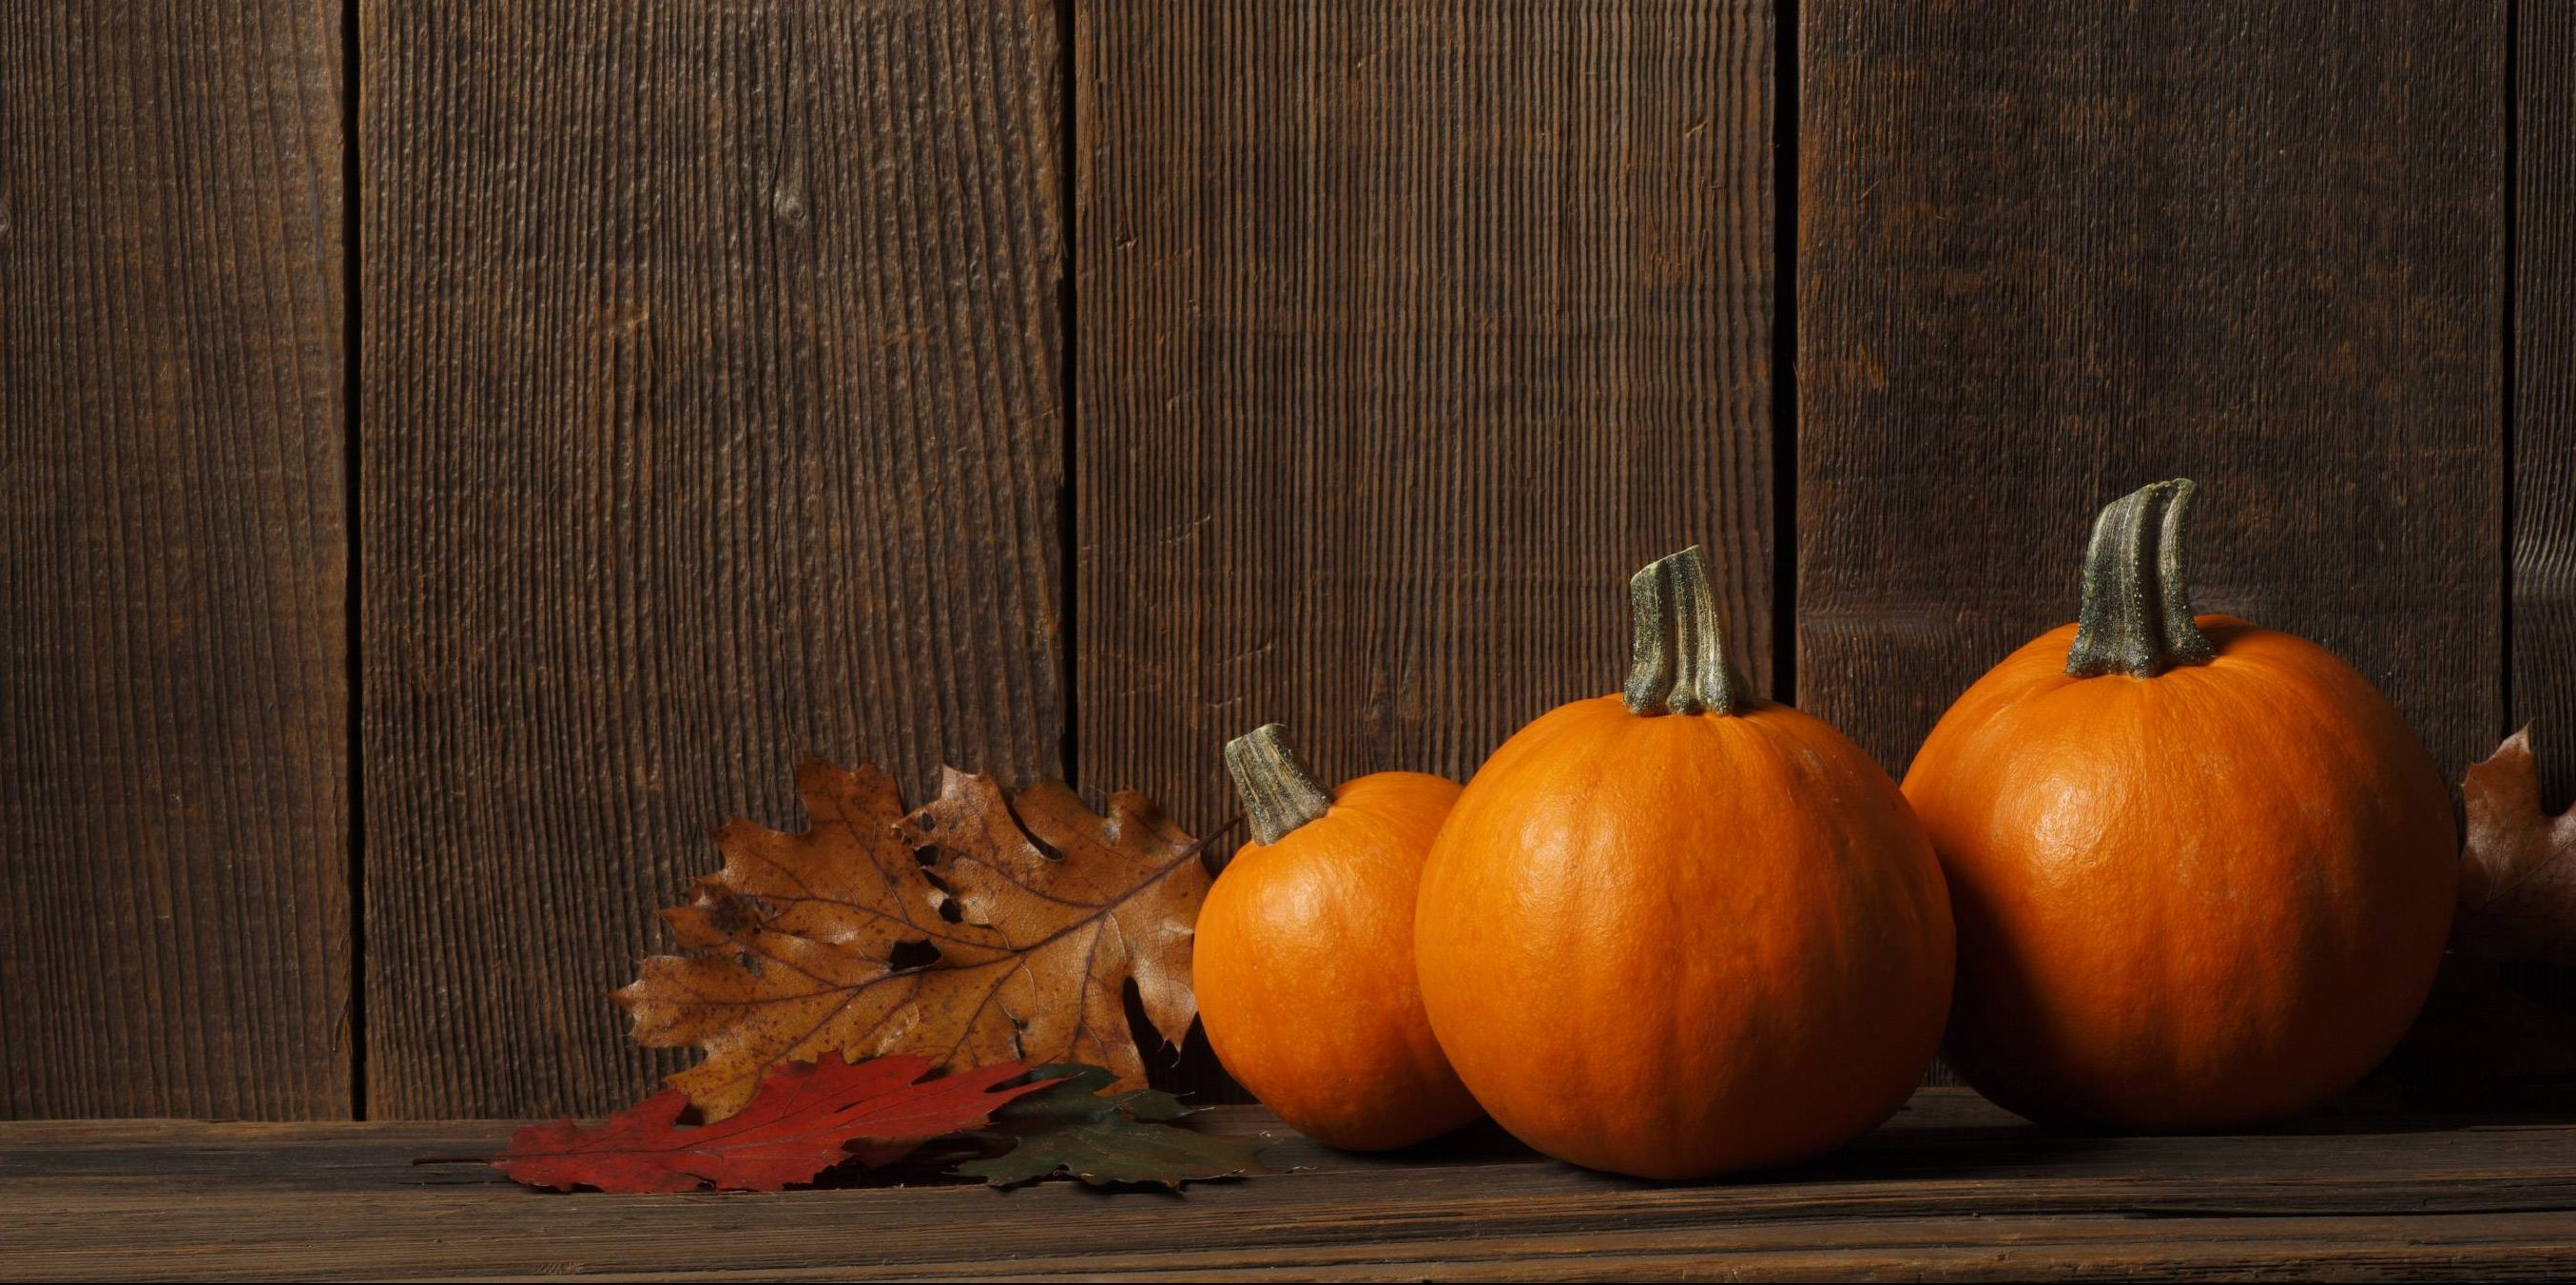 Thanksgiving background HD images Download Happy Thanksgiving 2709x1351